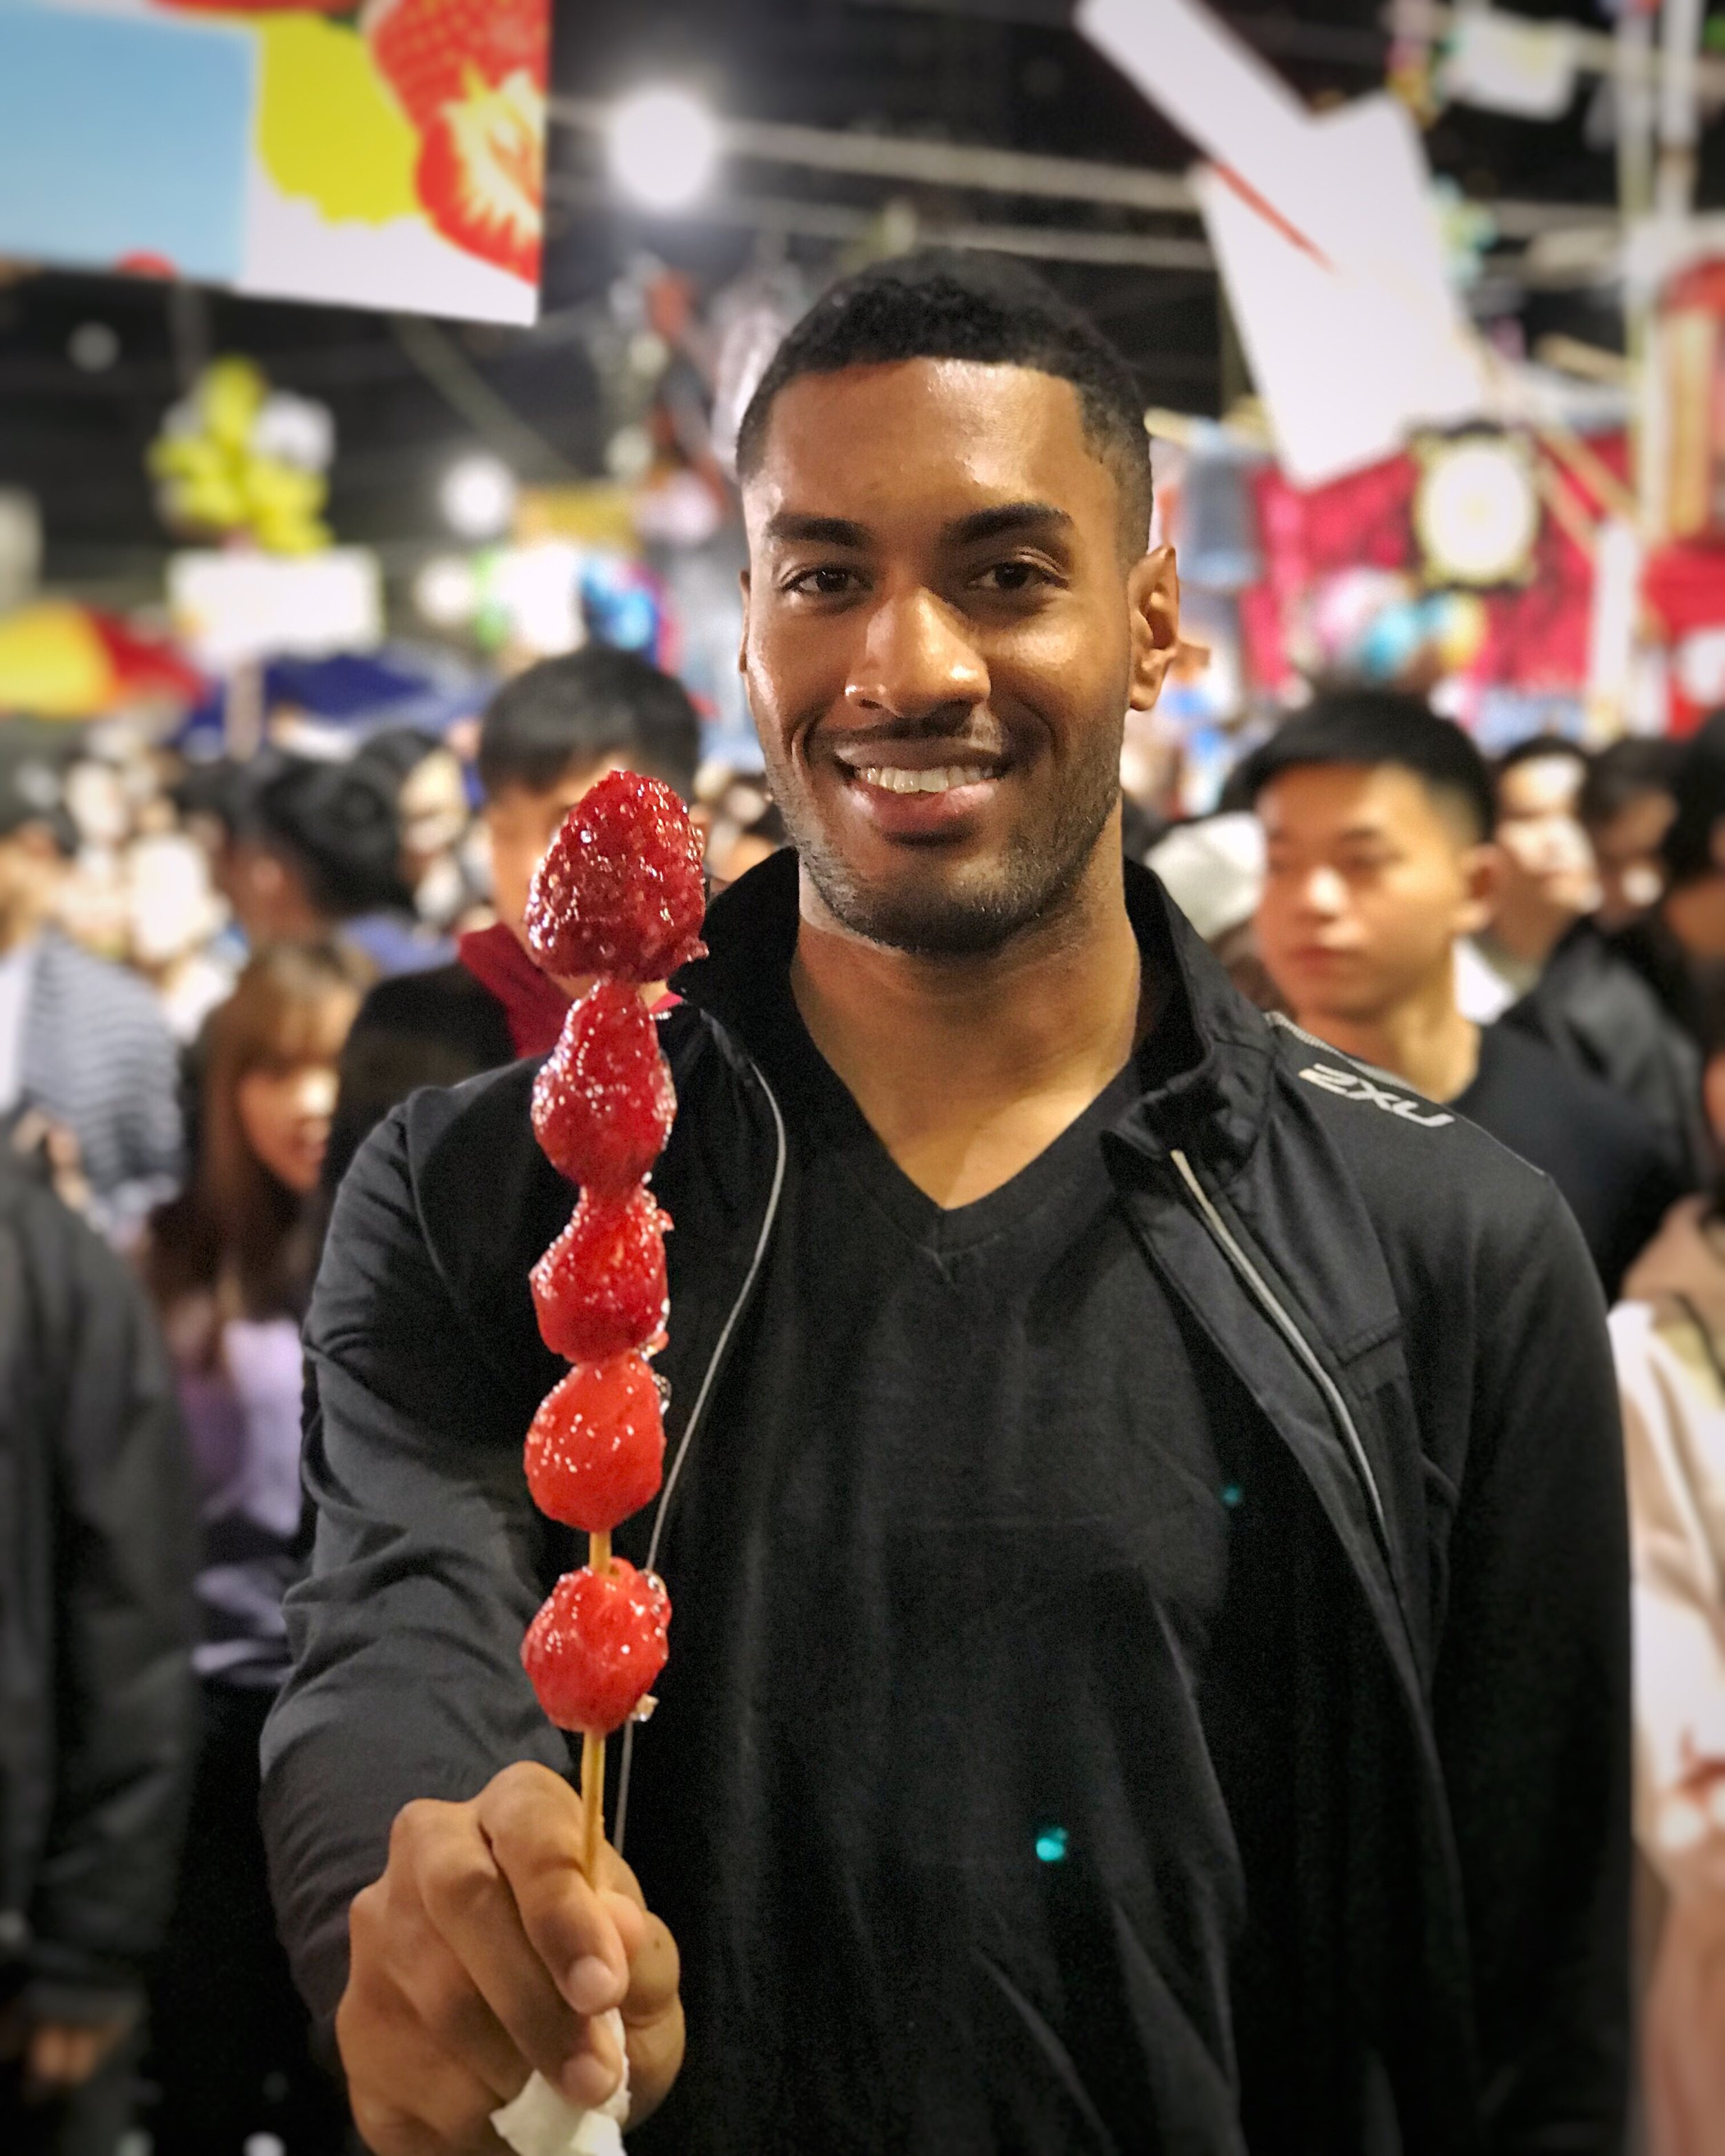 Celebrating the Year of the Dog with frozen candied strawberries at the Lunar New Year Market.